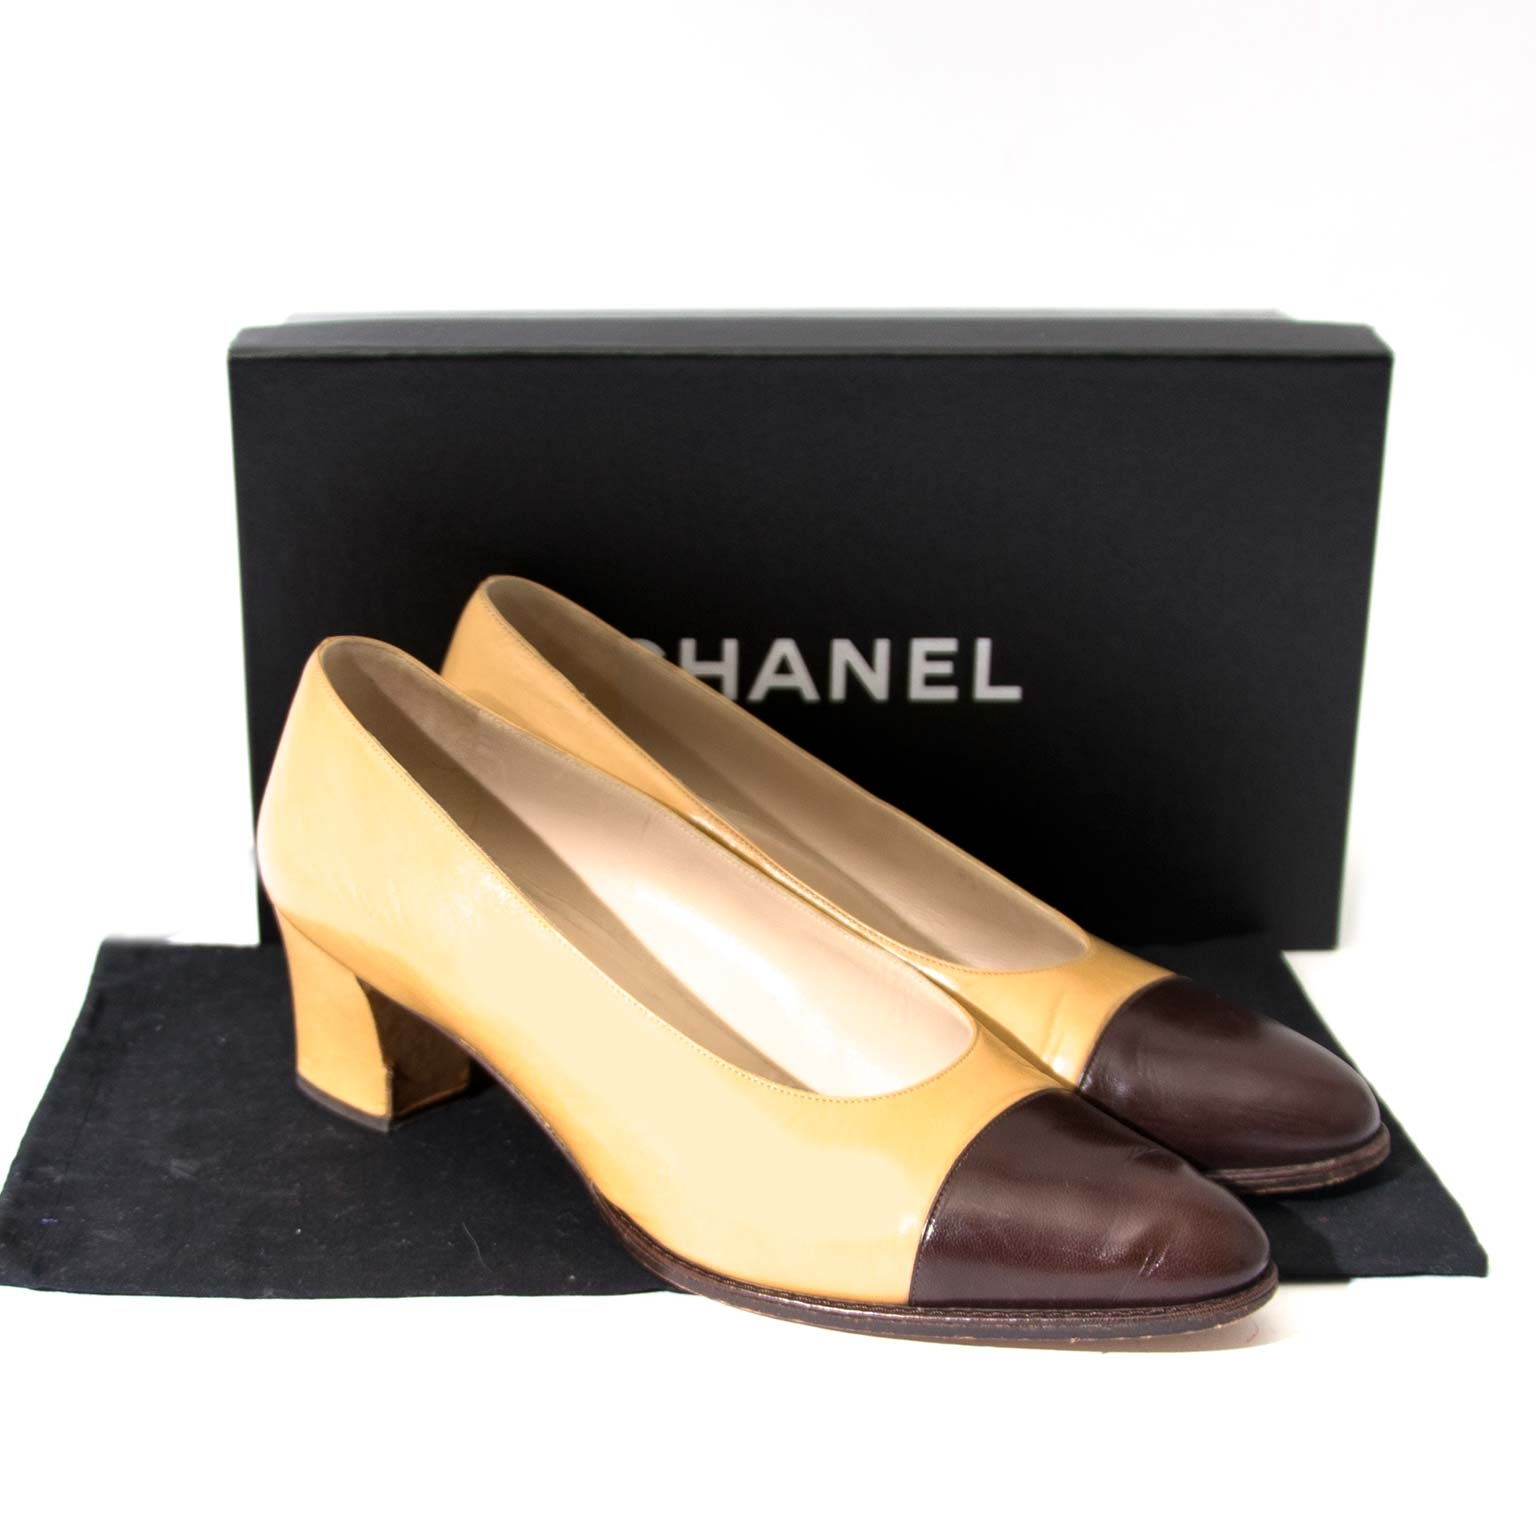 Chanel Classic Beige and Brown Block Heel Pumps - Size 38